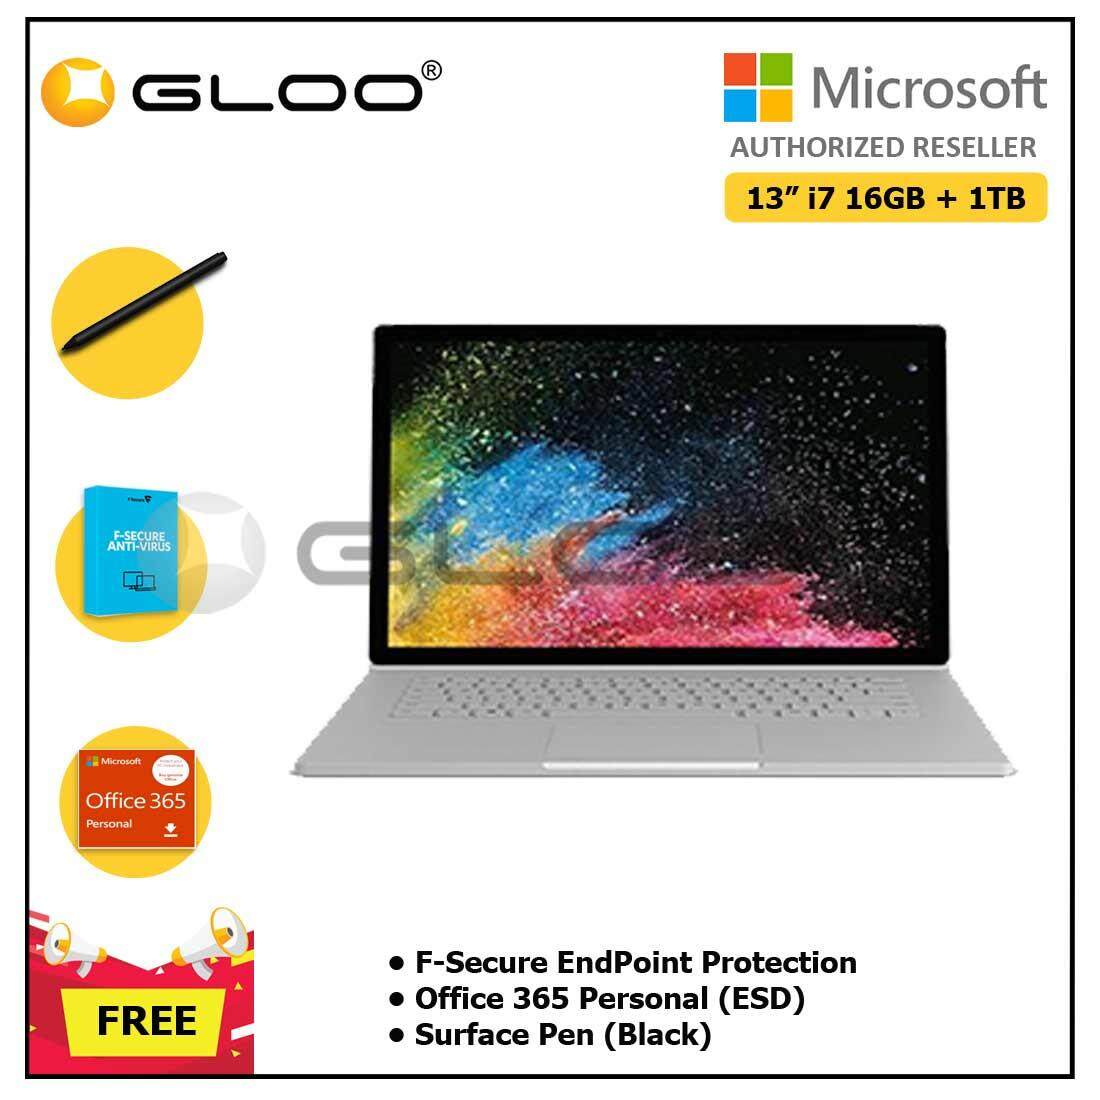 """Surface Book 2 13"""" Core i7/16GB RAM - 1TB + F-Secure EndPoint Protection + Office 365 Personal ESD + Pen Black"""